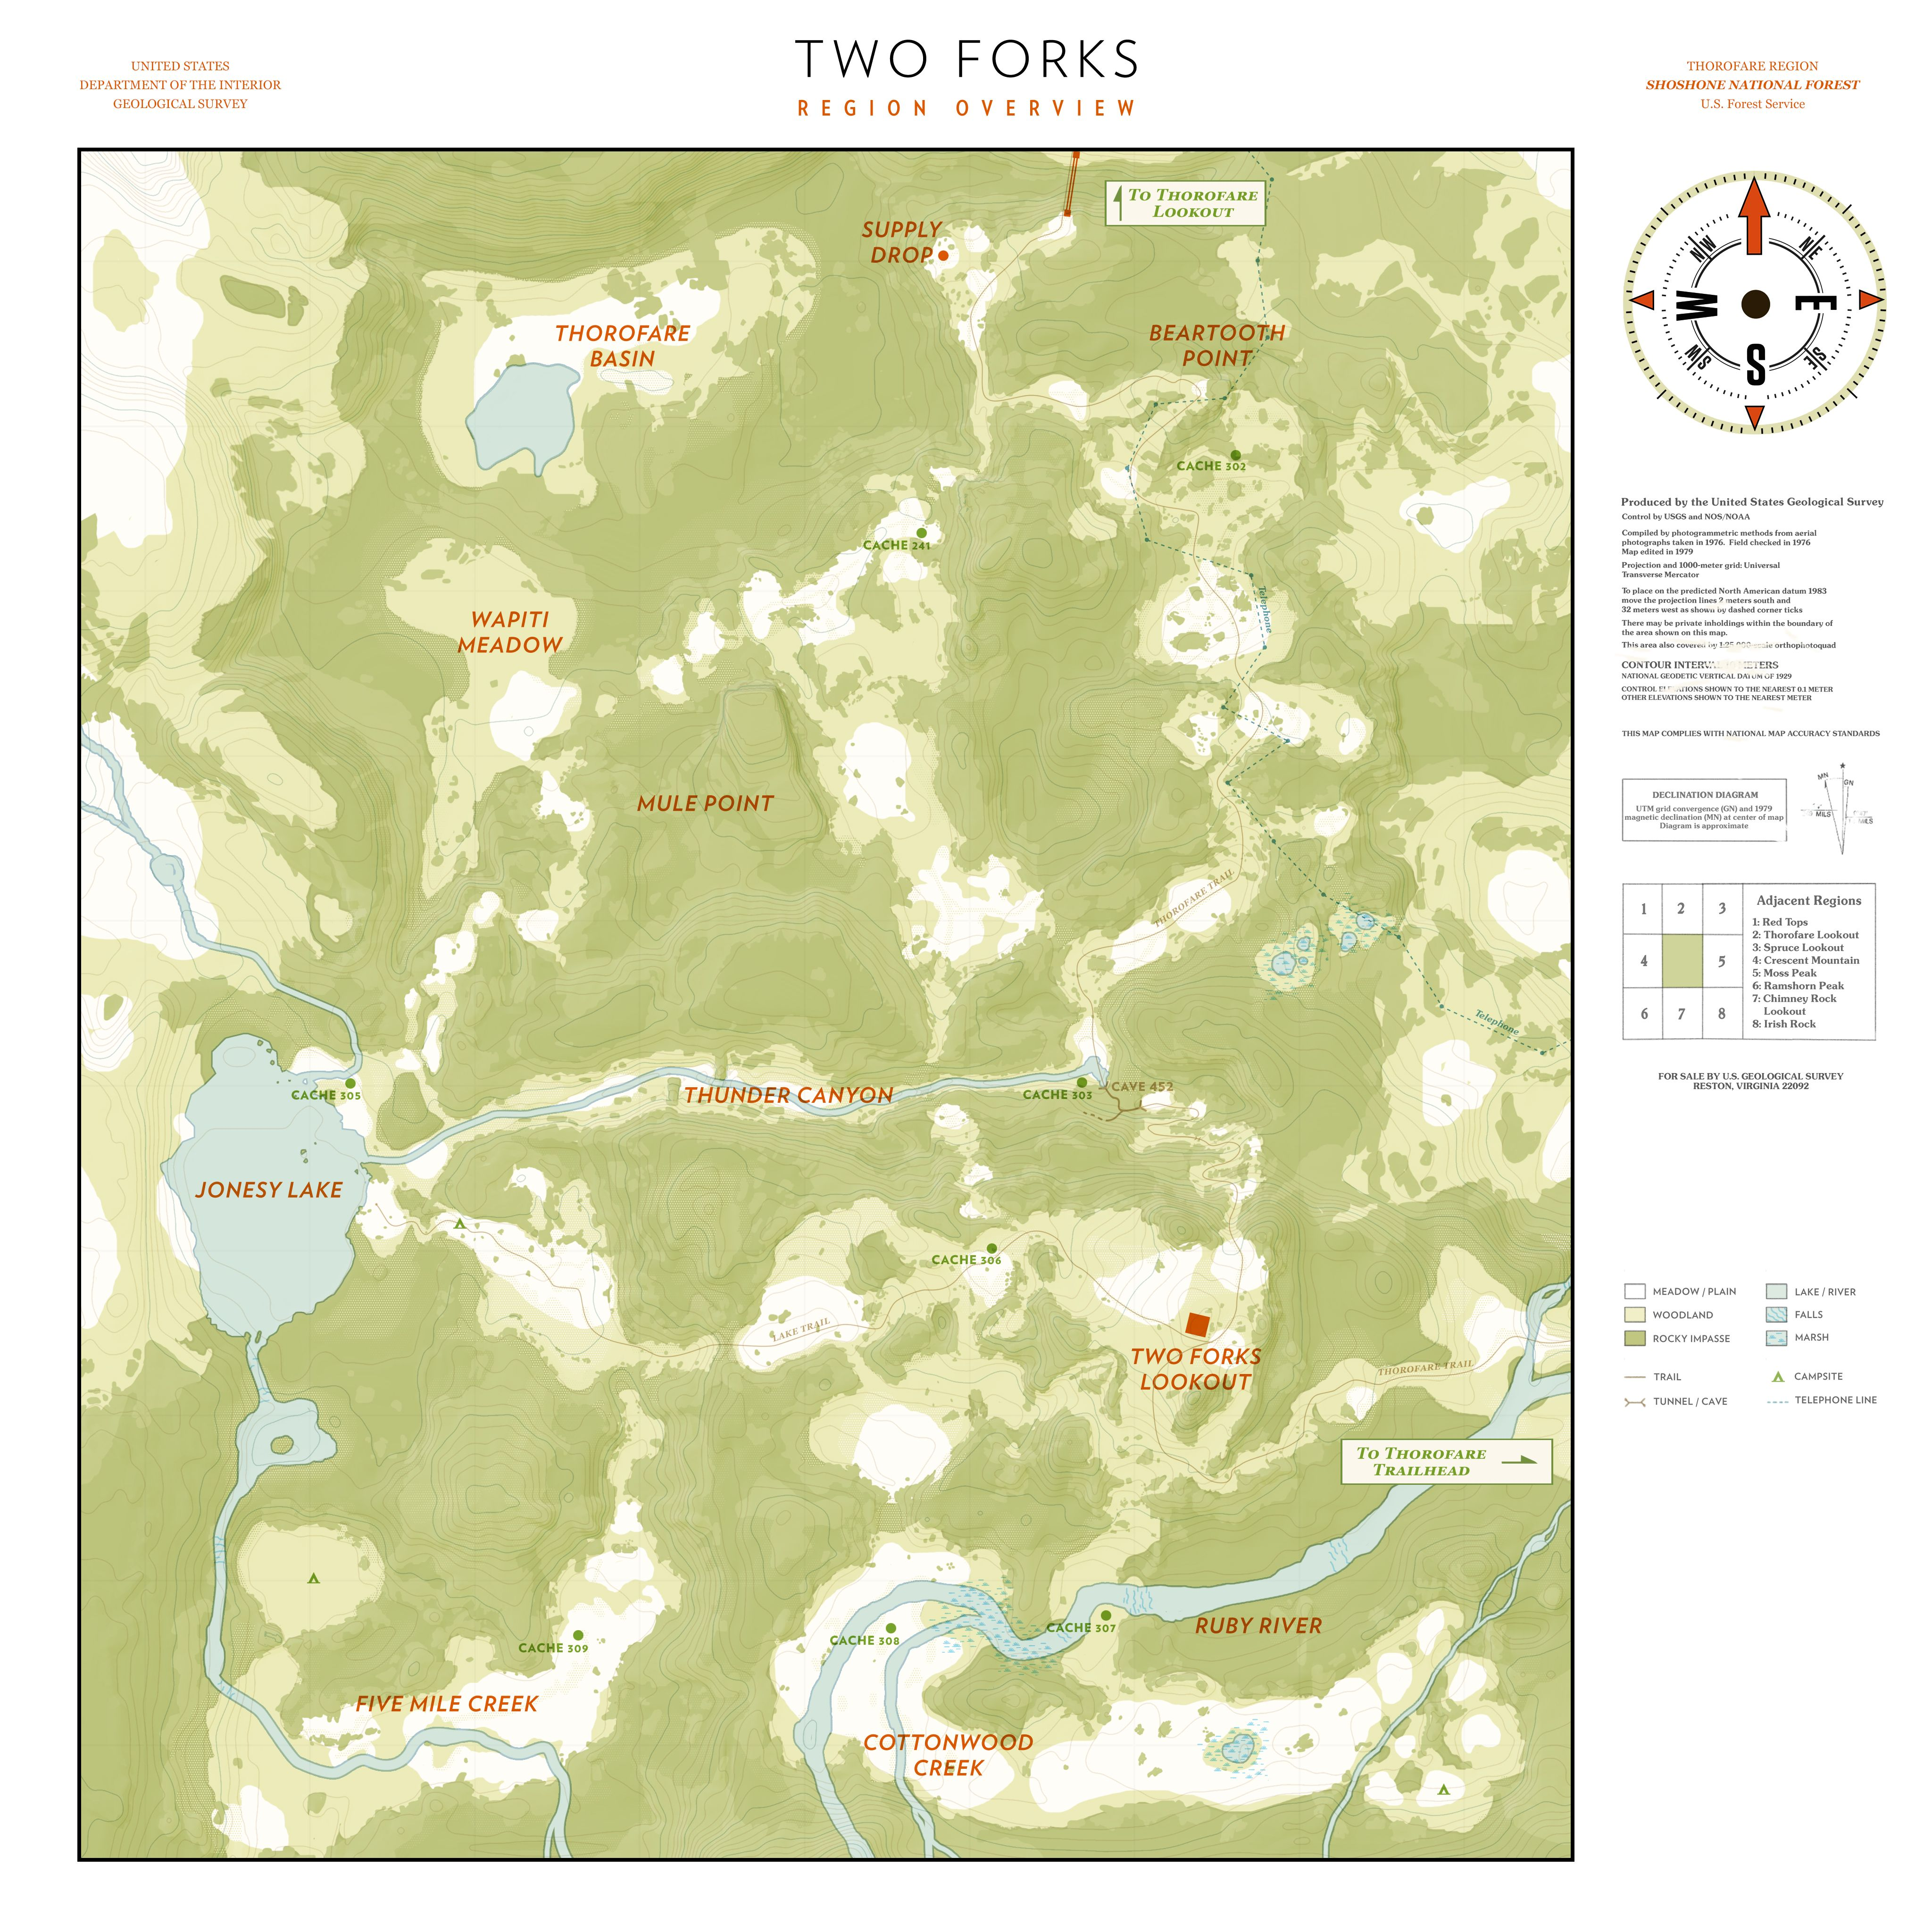 Firewatch world map cleang 40964096 state park pinterest firewatch world map cleang 40964096 gumiabroncs Image collections